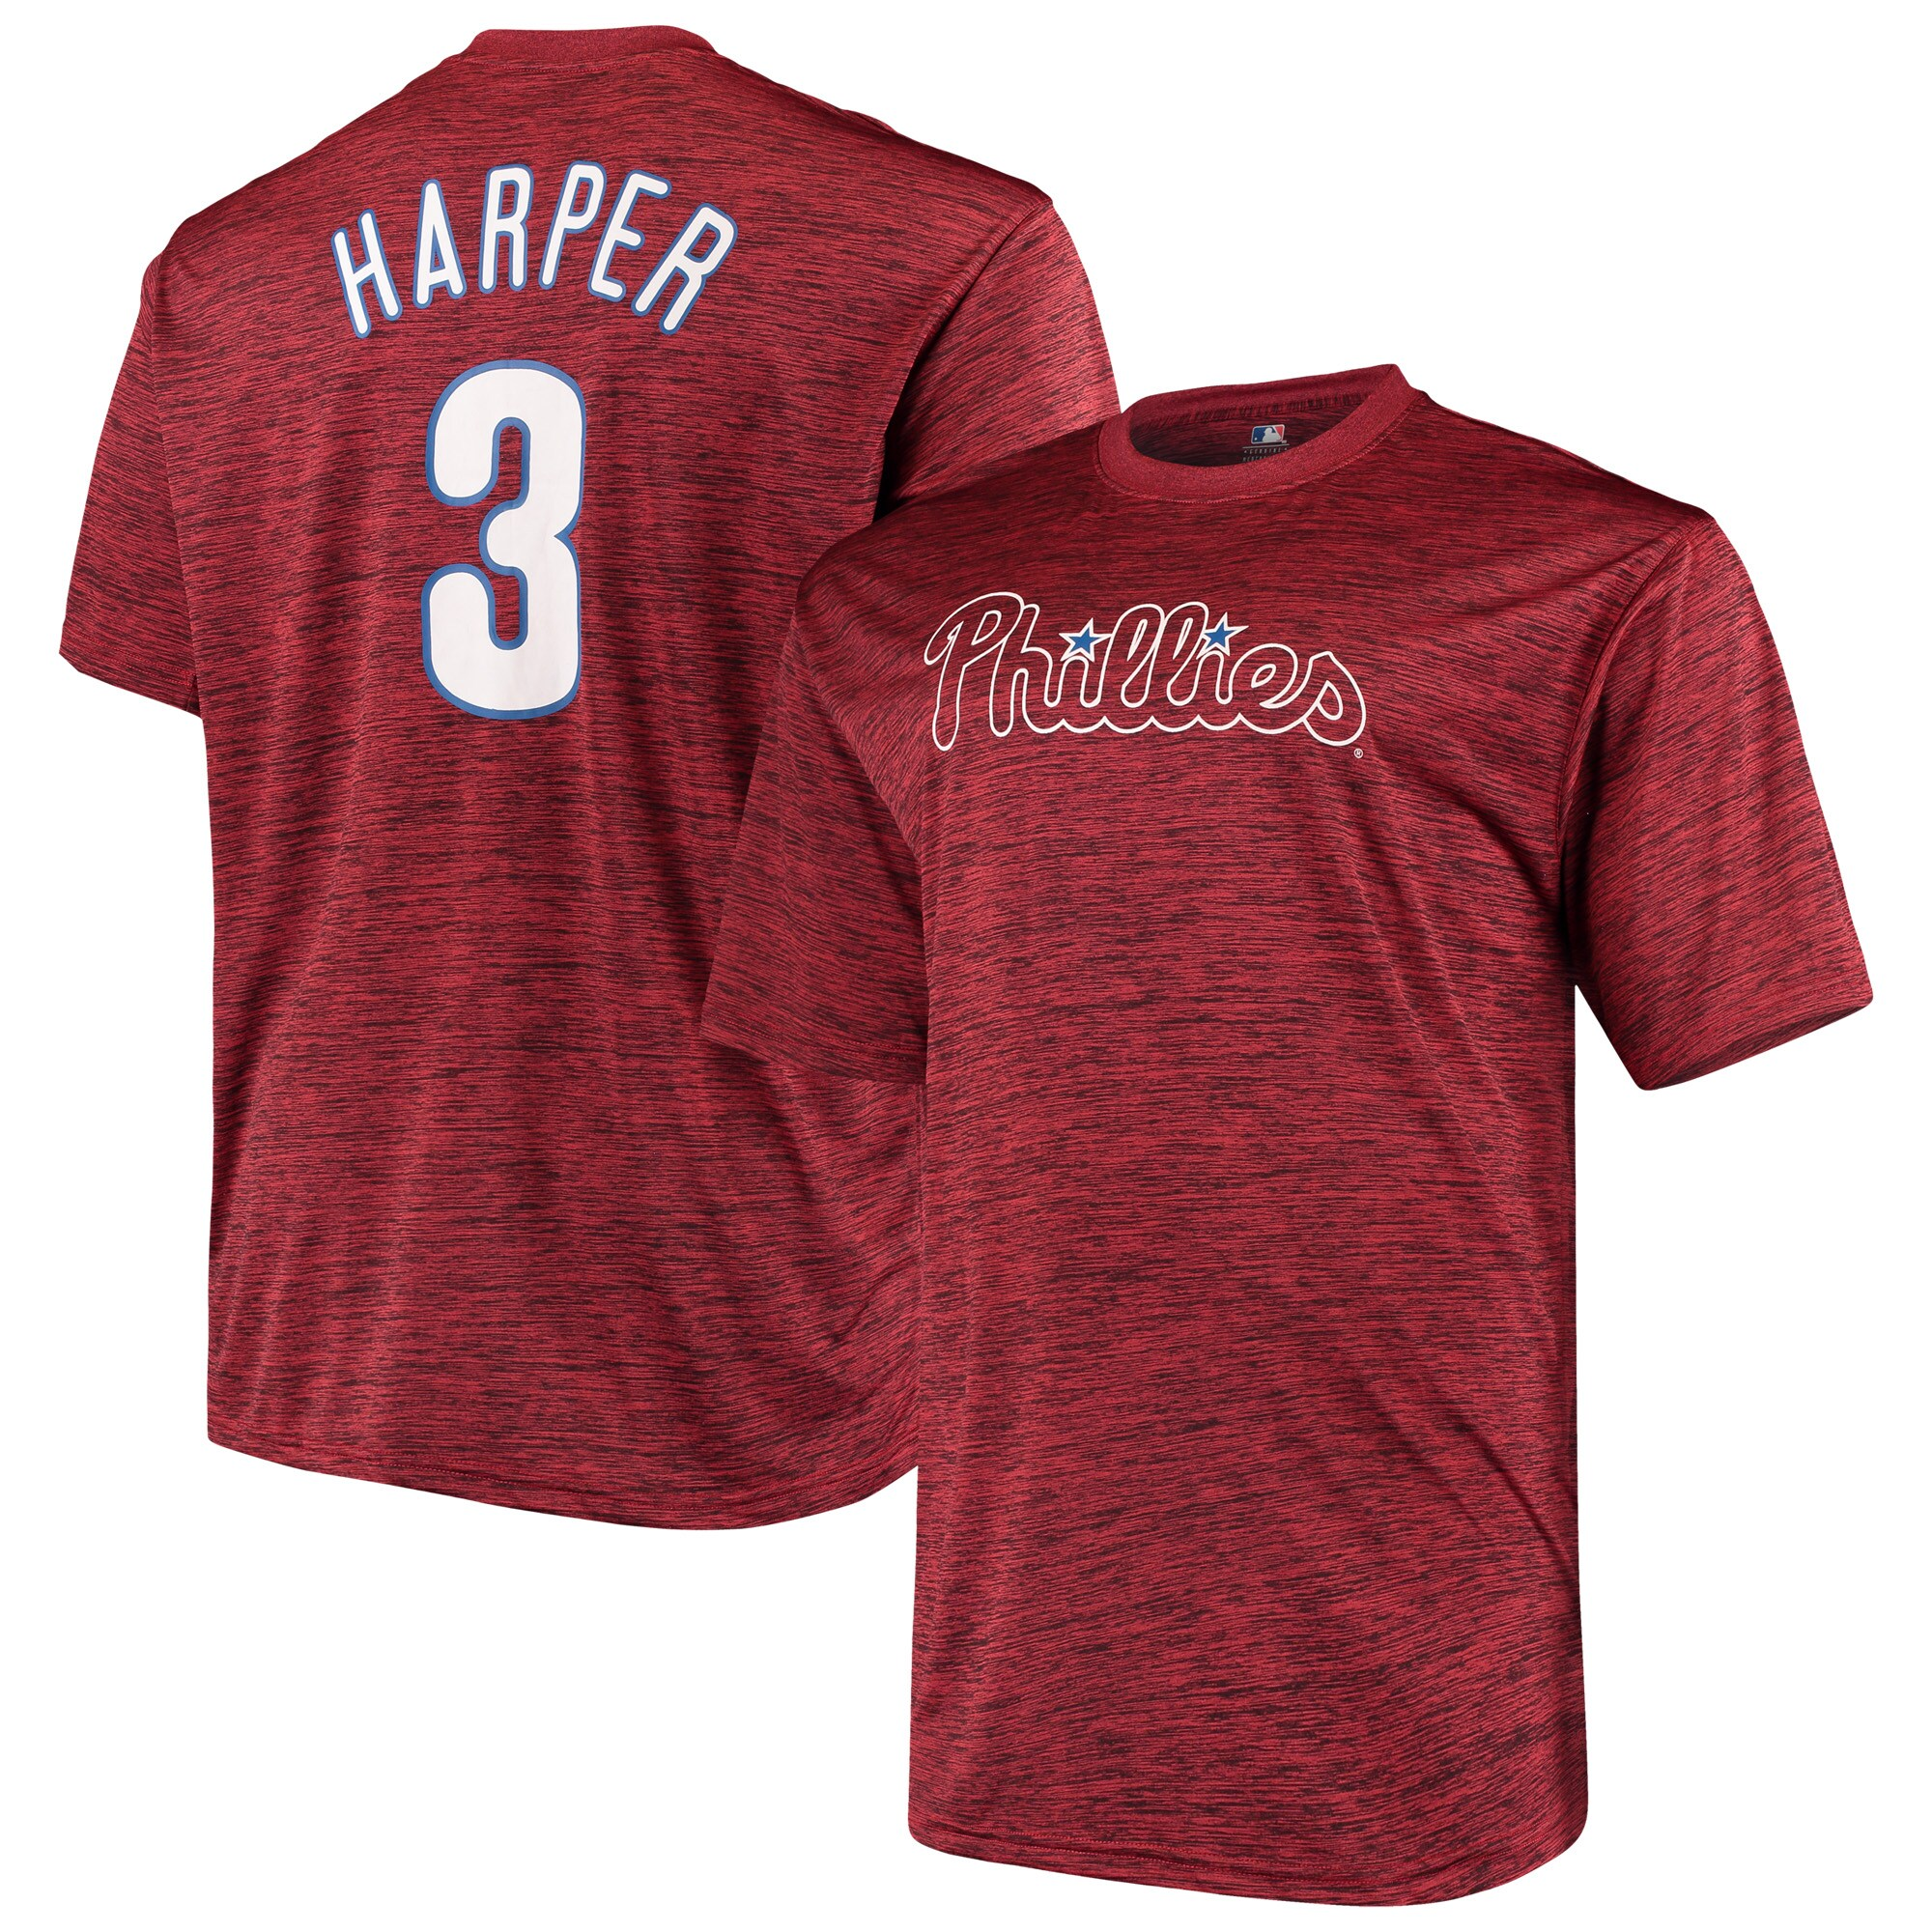 Bryce Harper Philadelphia Phillies Big & Tall Name & Number T-Shirt - Heathered Red